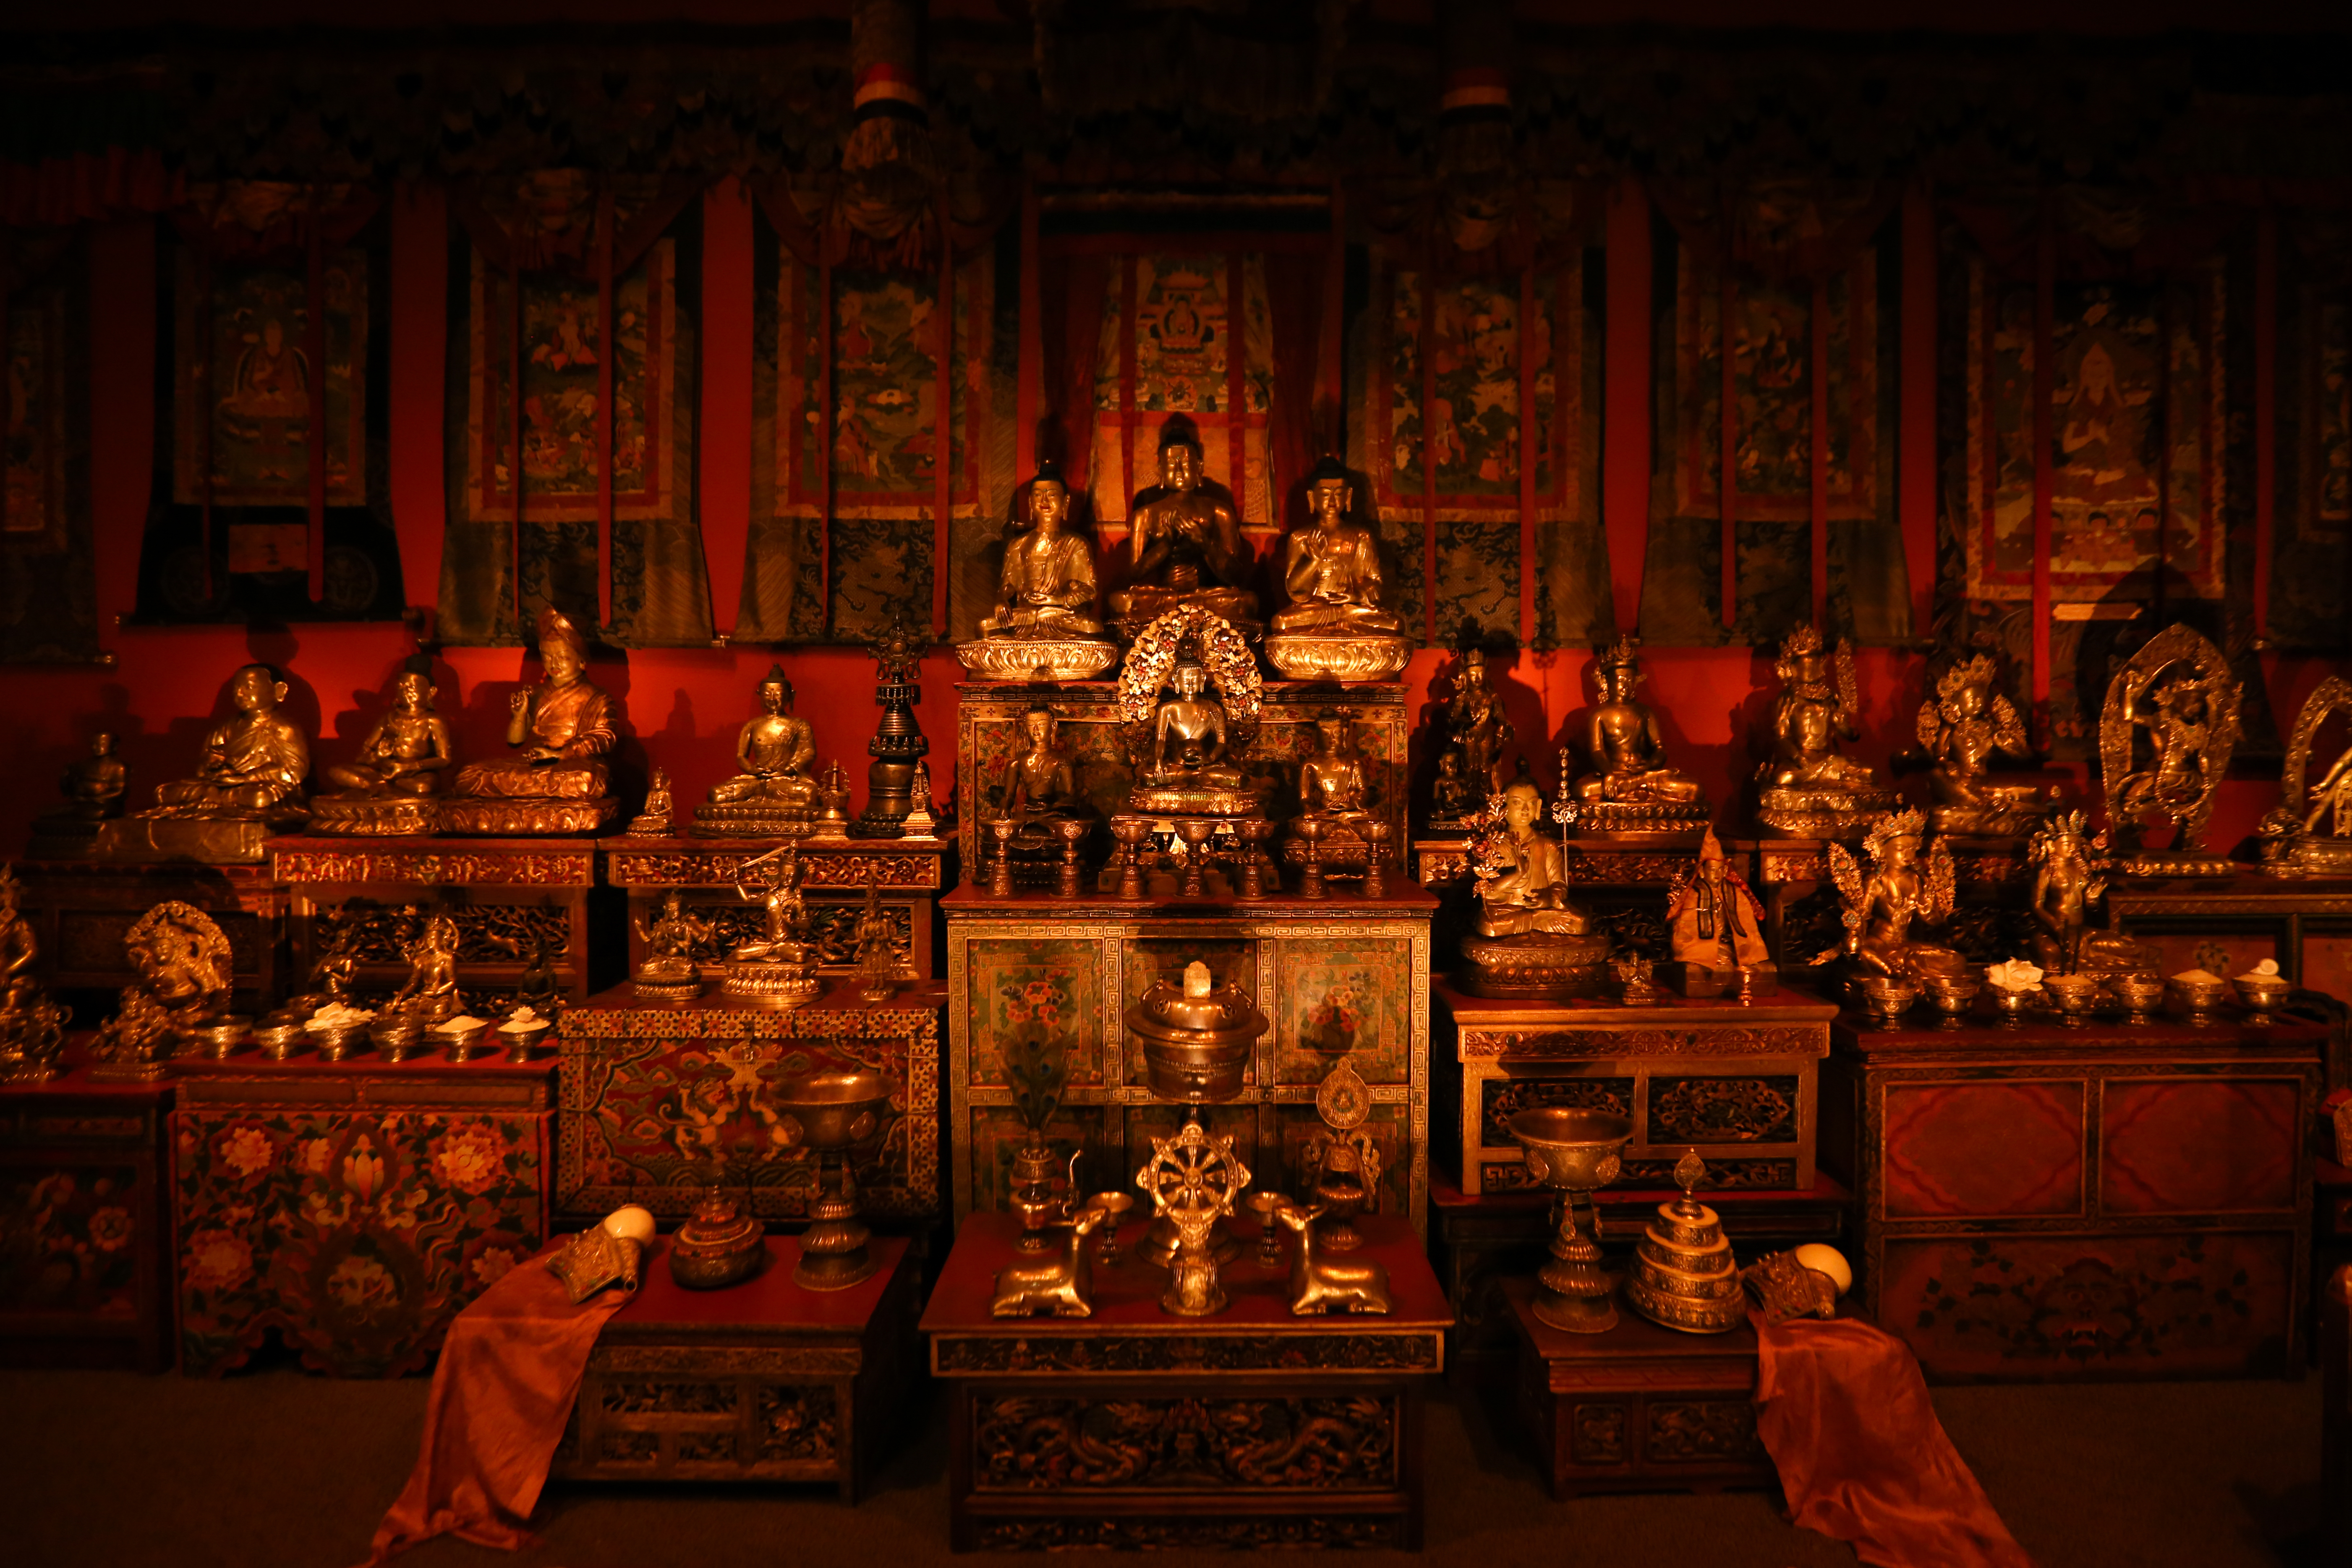 The Tibetan Buddhist shrine includes a soundtrack of monks chanting. (Amanda Andrade-Rhoades/DC Refined)